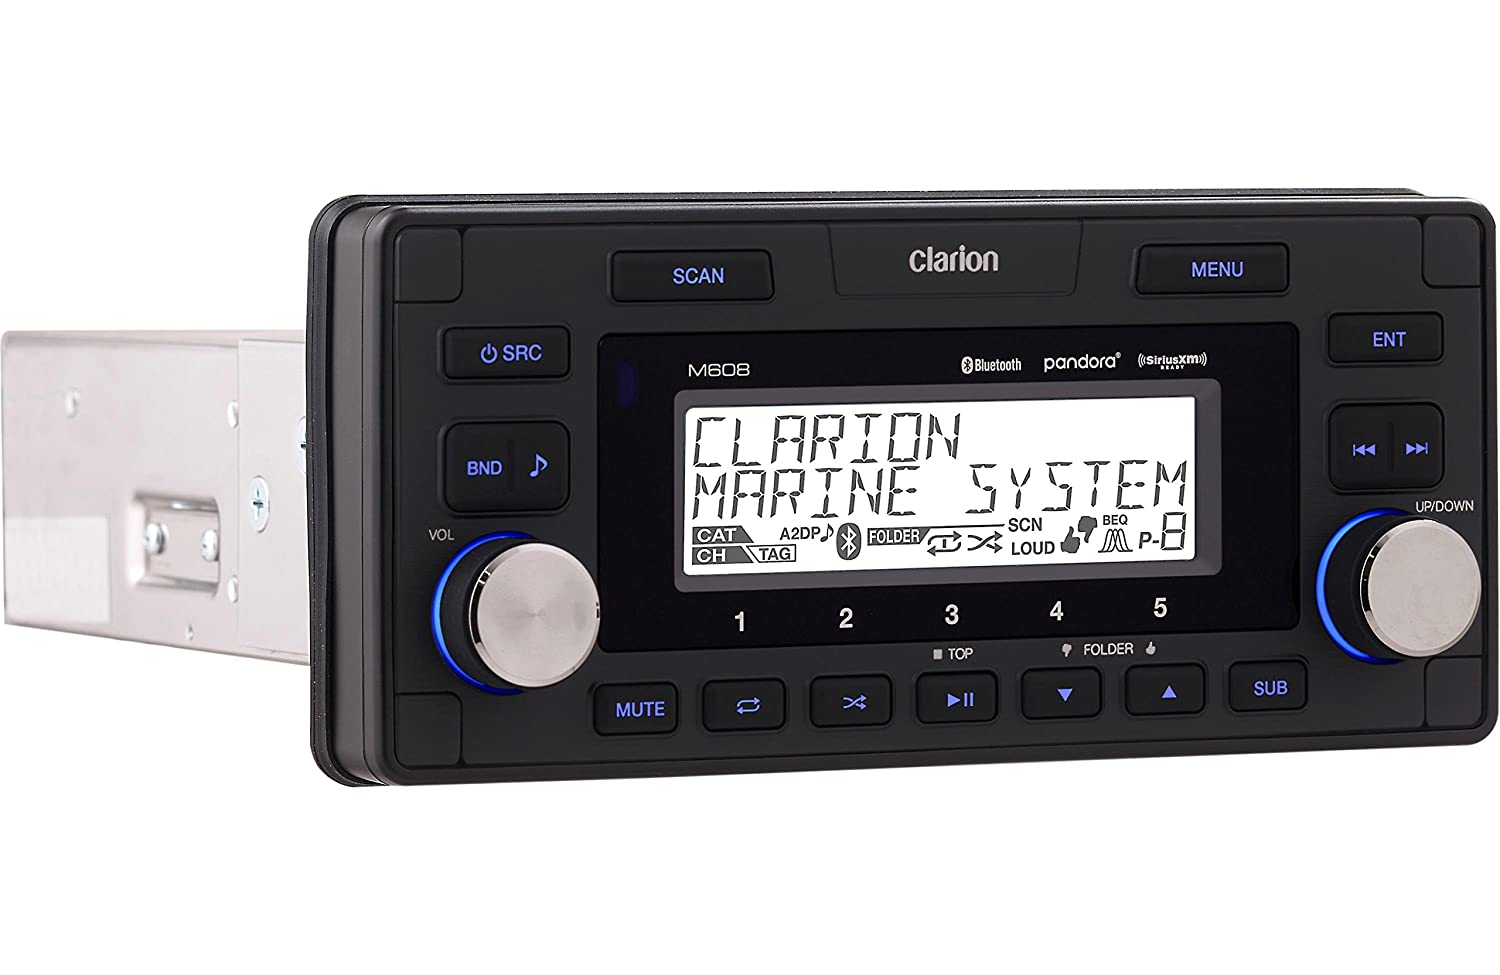 Amazon.com: Clarion M608 Marine In-Dash 4-zone SIRIUS/XM-ready Digital  Media Receiver with Bluetooth: Cell Phones & Accessories